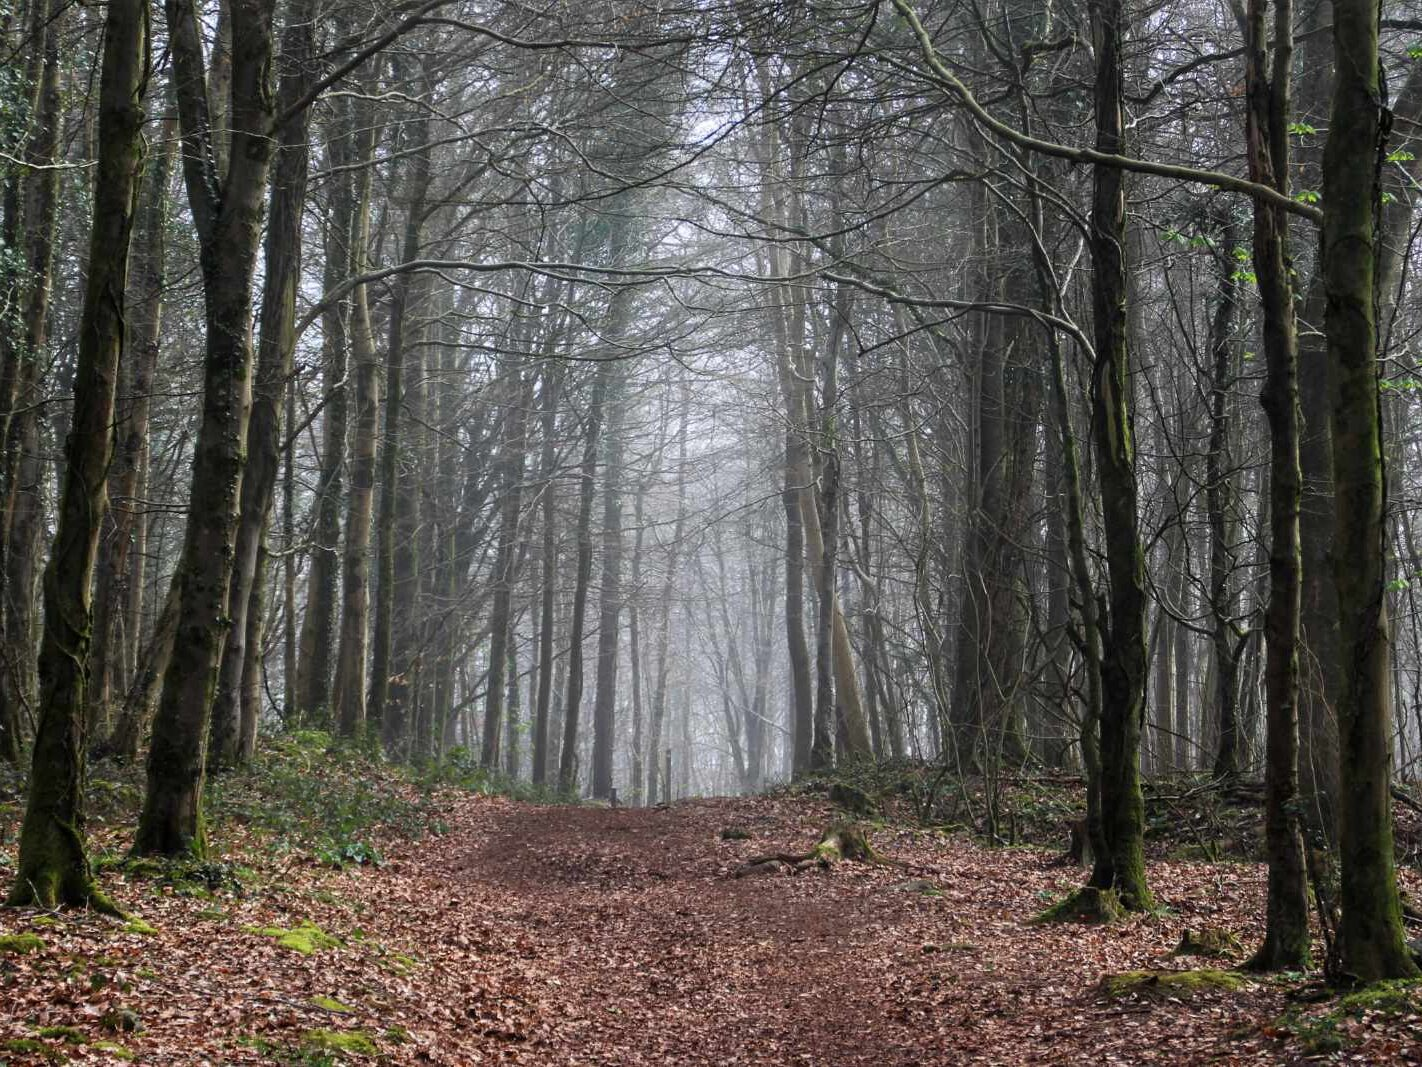 Fforest Fawr with fog in the distance